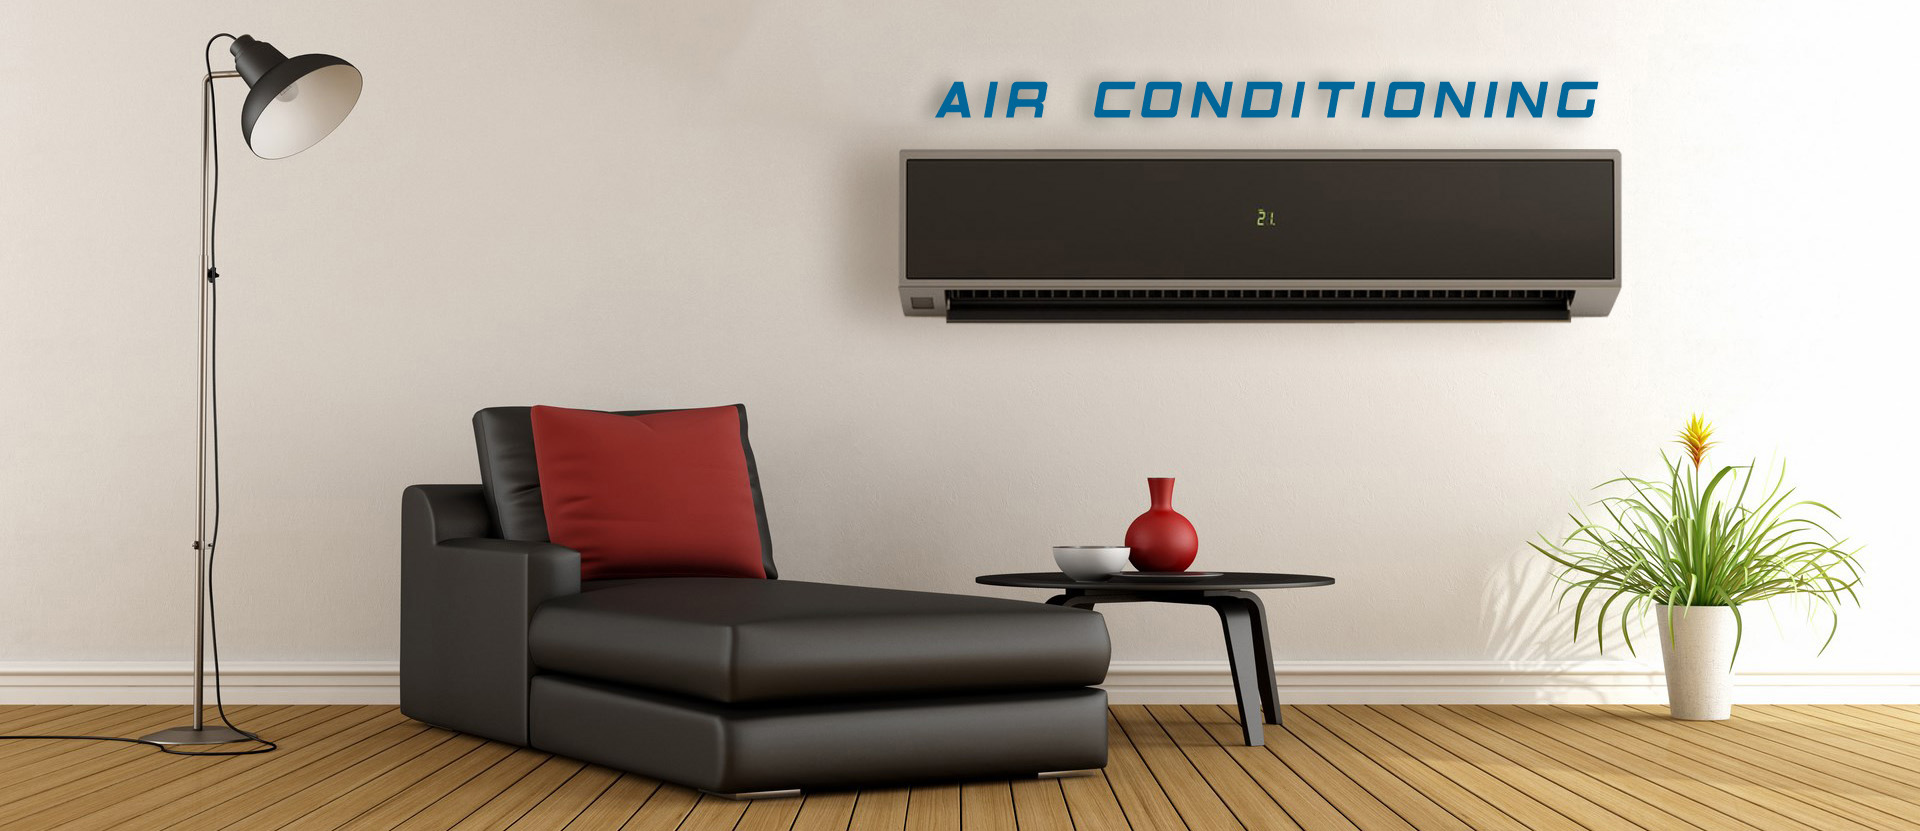 Lamp, sofa, table, and CoolAir24 air conditioning london